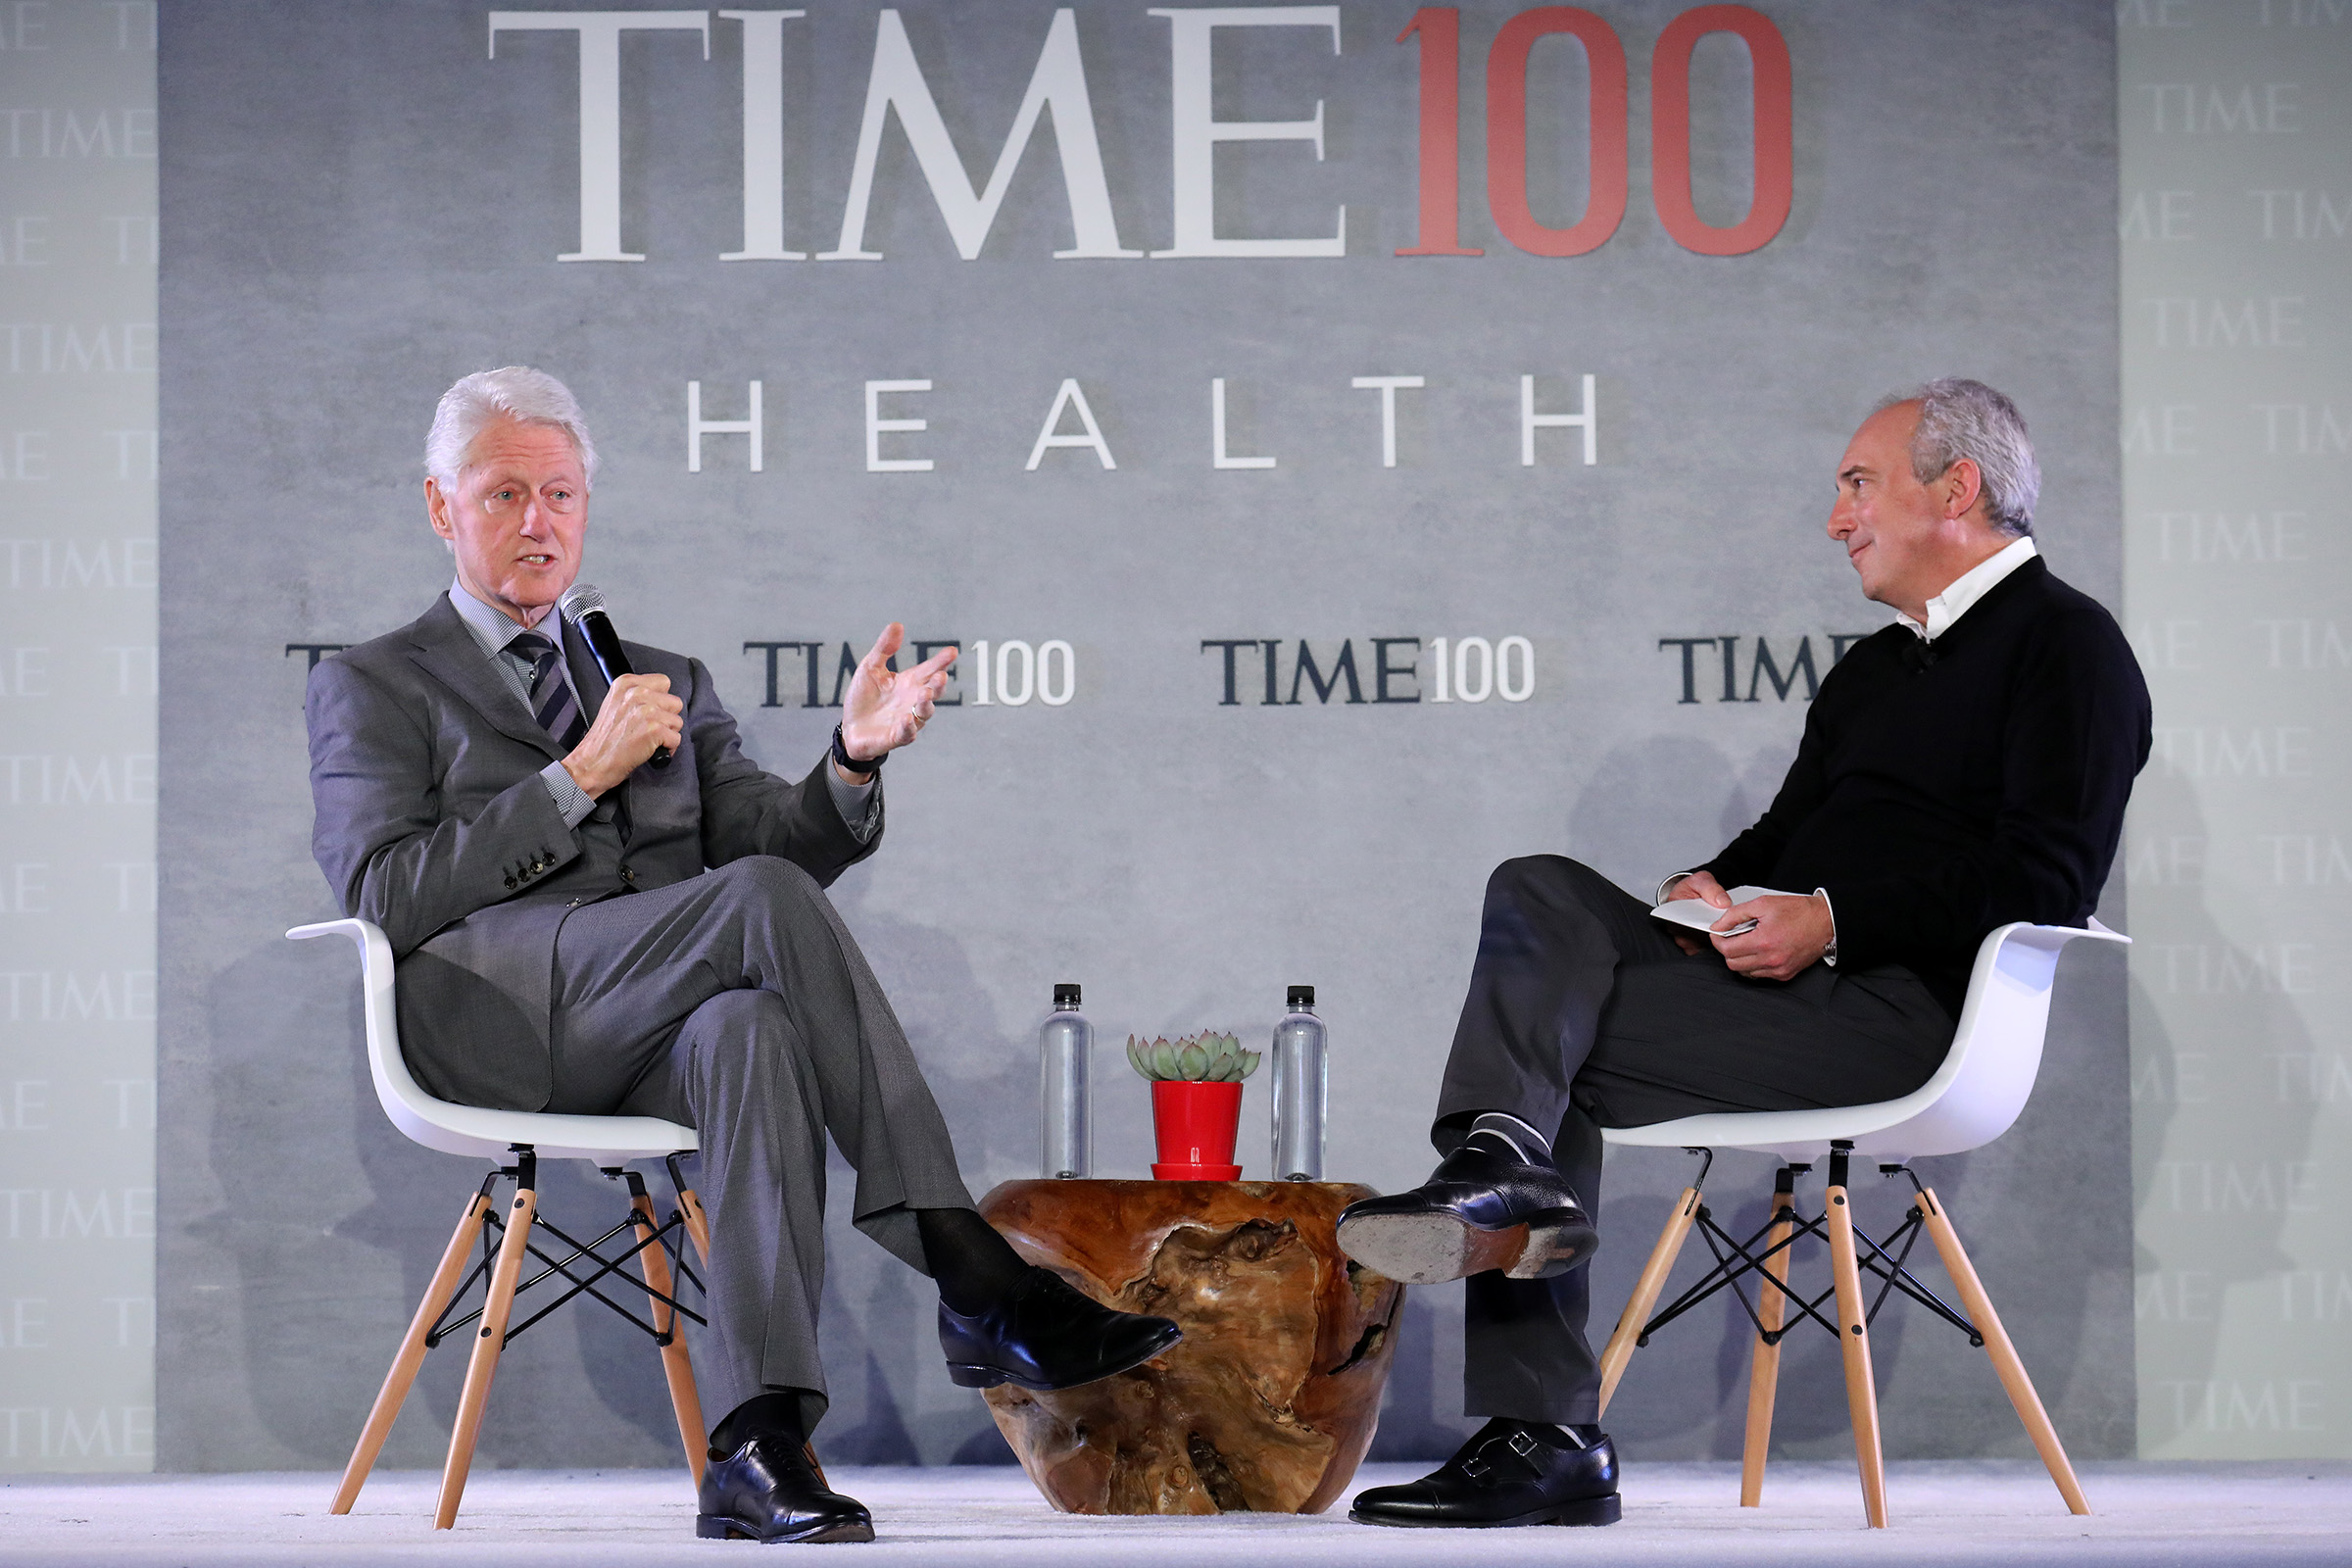 Former U.S. President Bill Clinton (L) speaks with Dr. David Agus,  CEO of the Lawrence J. Ellison Institute for Transformative.Medicine at USC during the TIME 100 Health Summit at Pier 17 in New York City on Oct. 17, 2019.